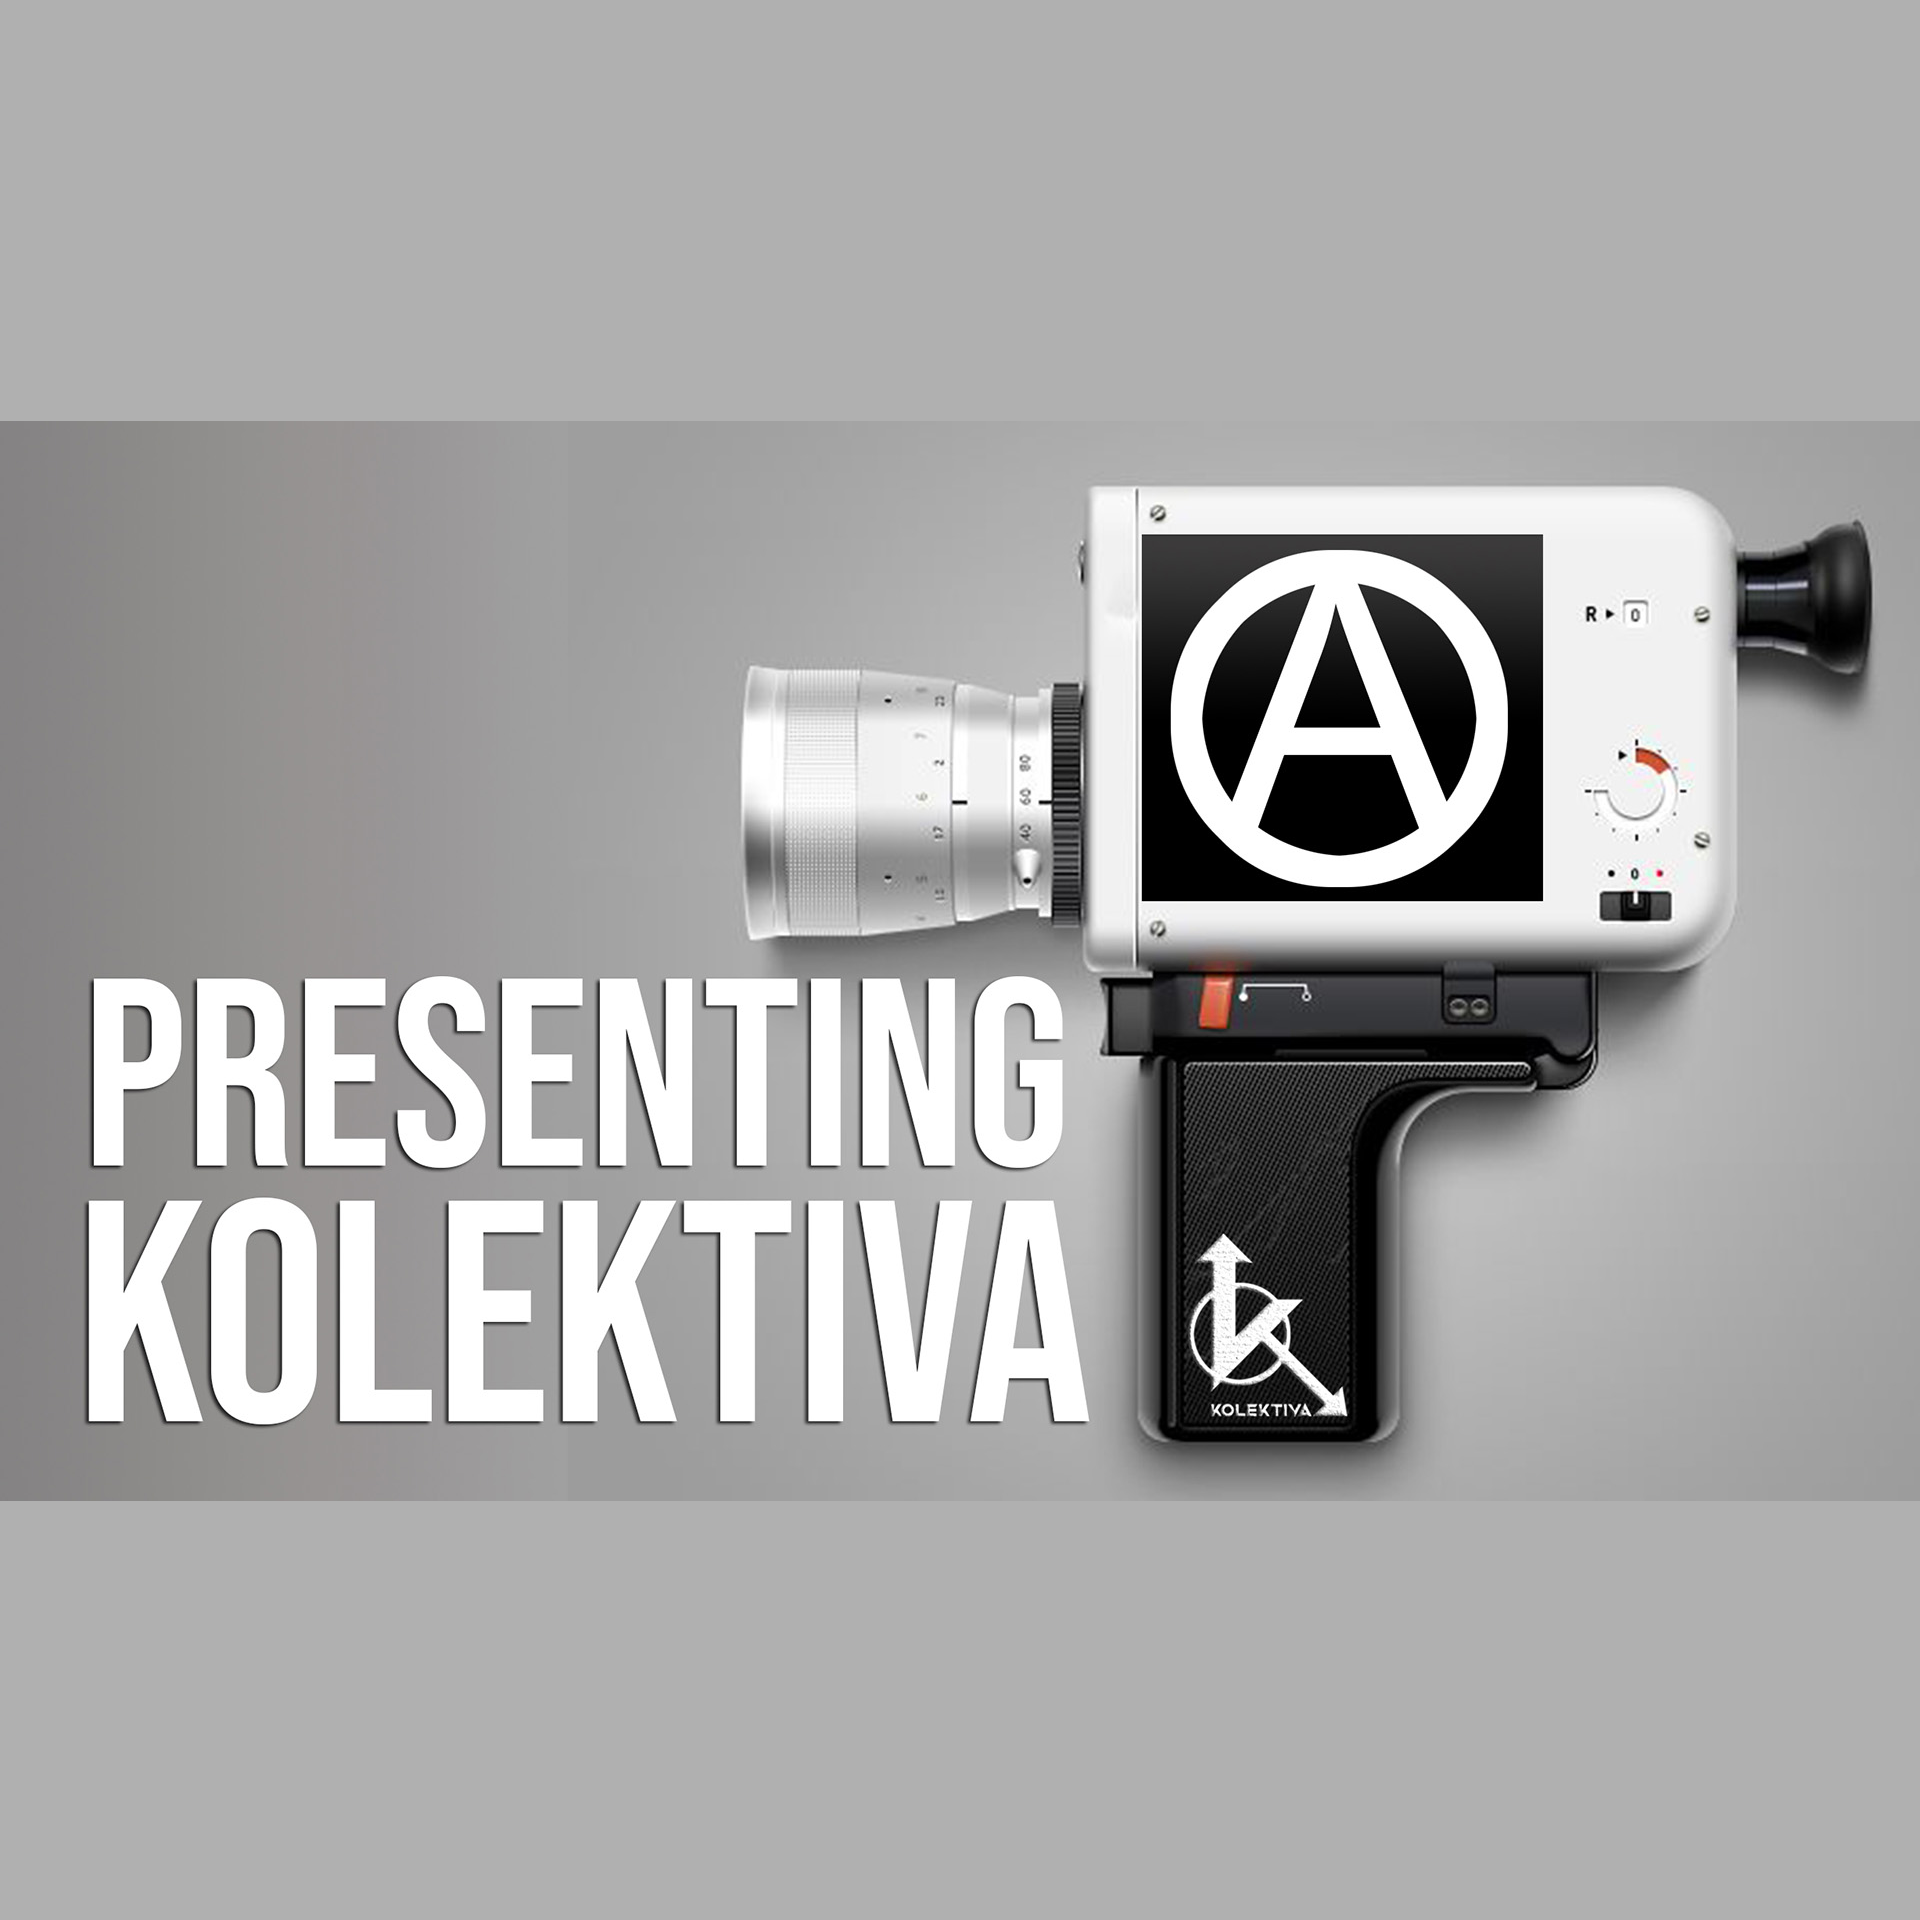 Kolektiva.media – a new anarchist videohosting alternative